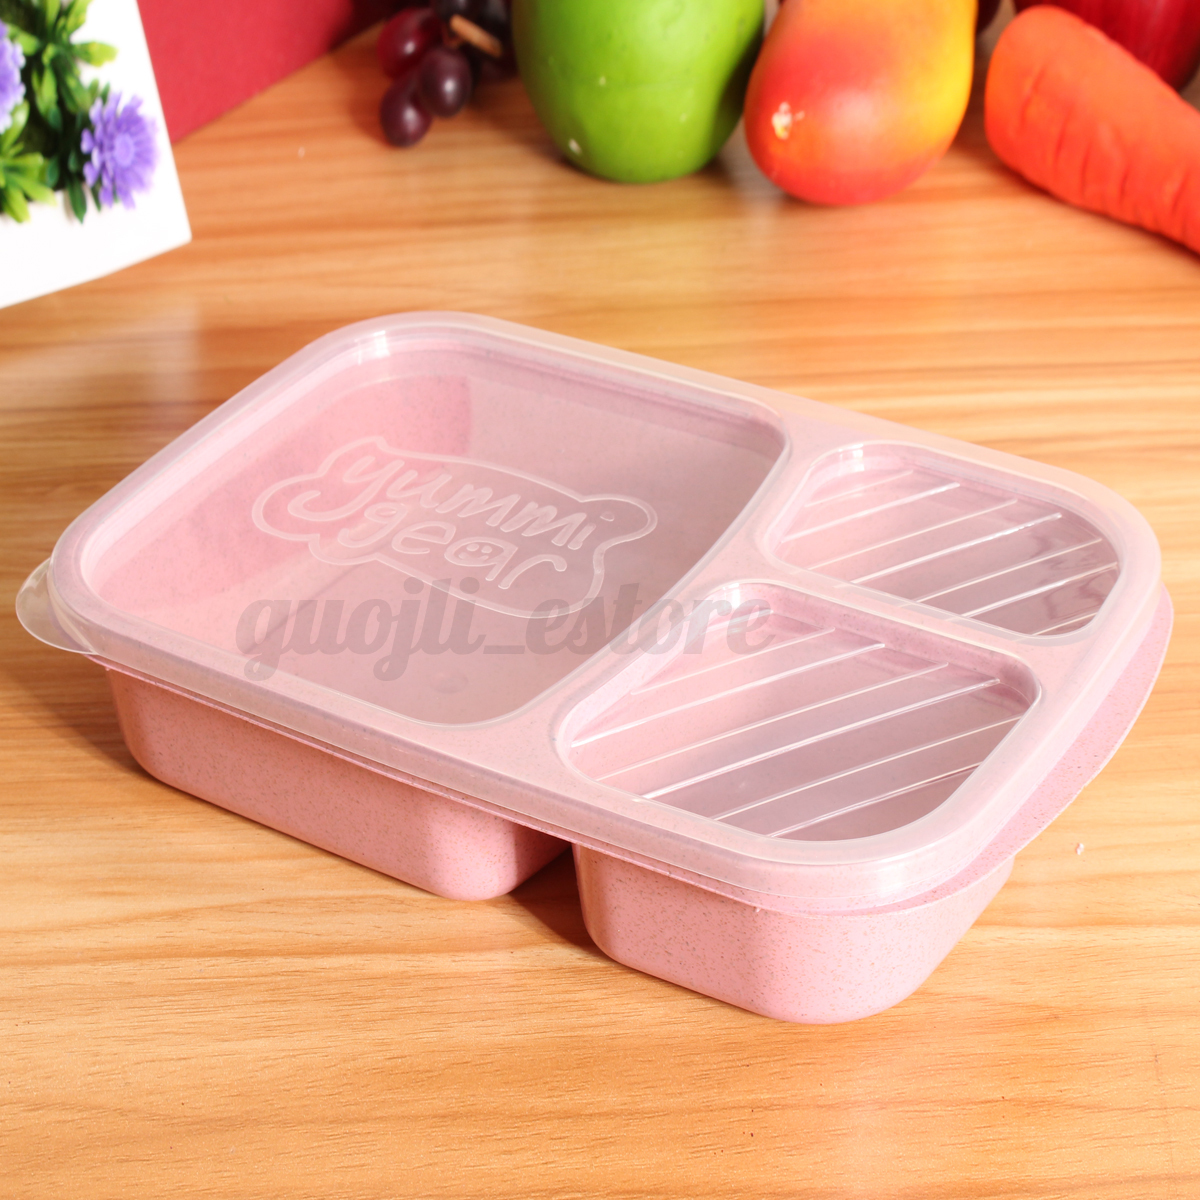 wheat 3 compartment lunch bento box picnic food storage microwave container 2017 ebay. Black Bedroom Furniture Sets. Home Design Ideas